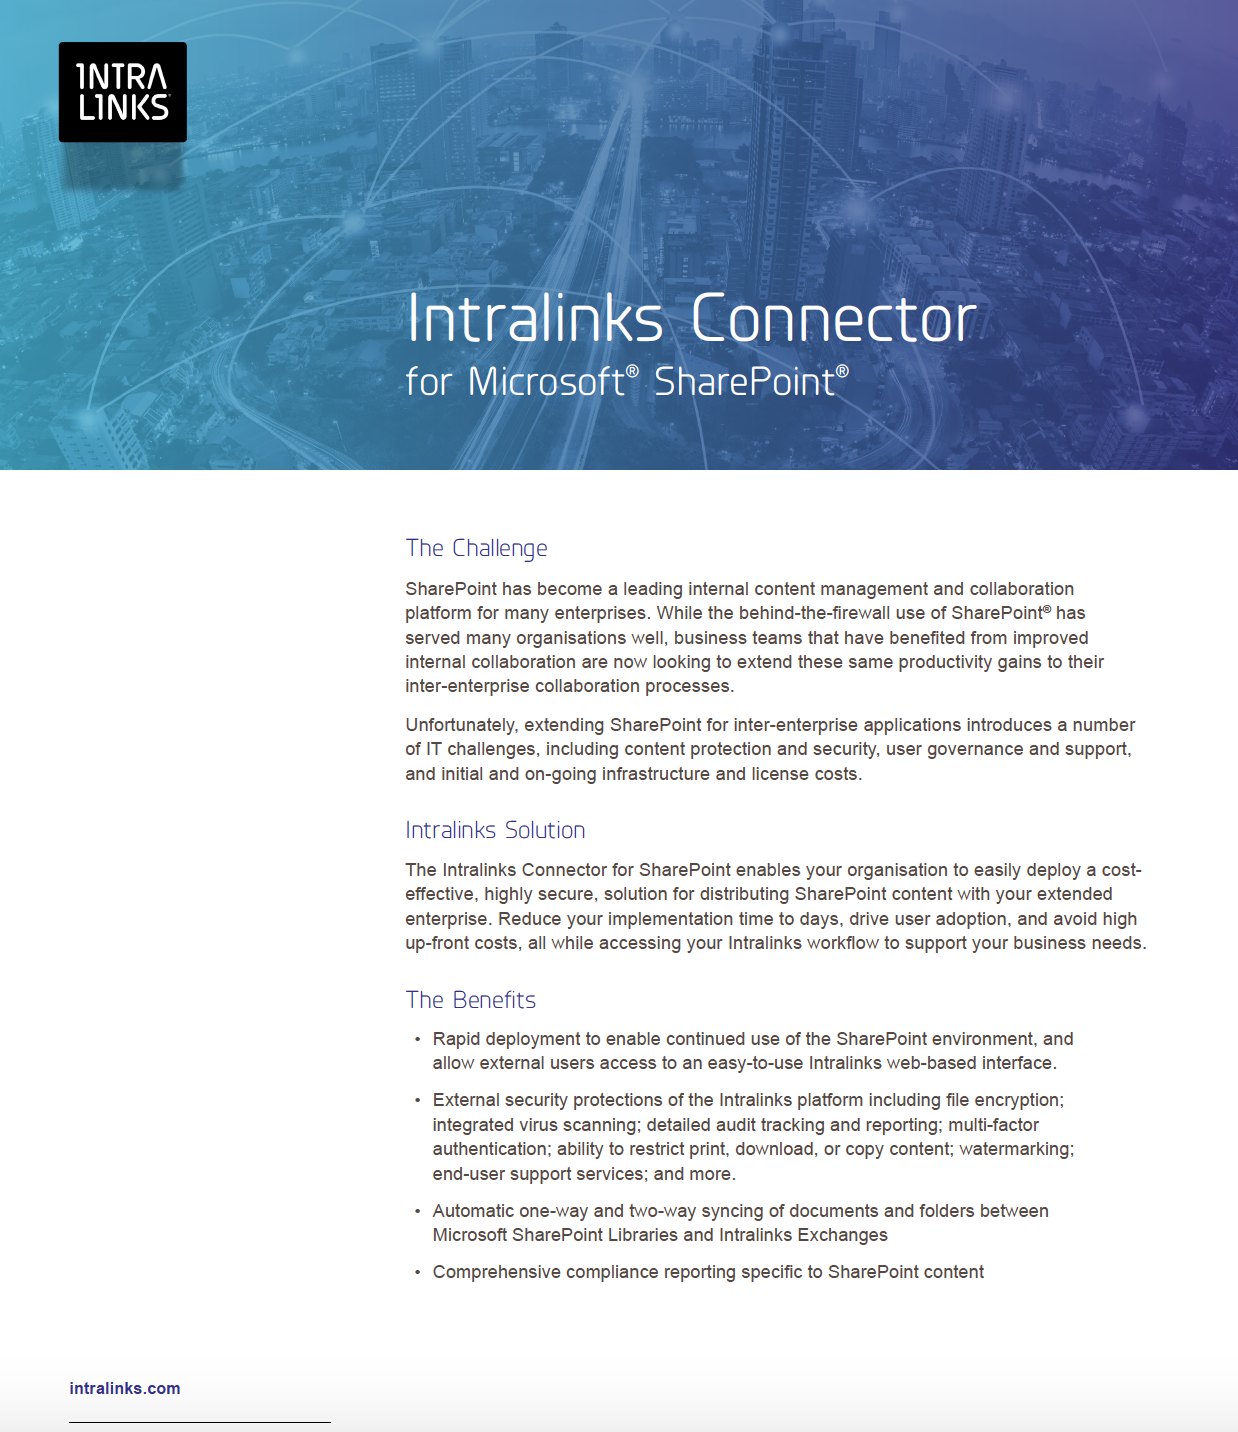 Intralinks Connector for Microsoft SharePoint